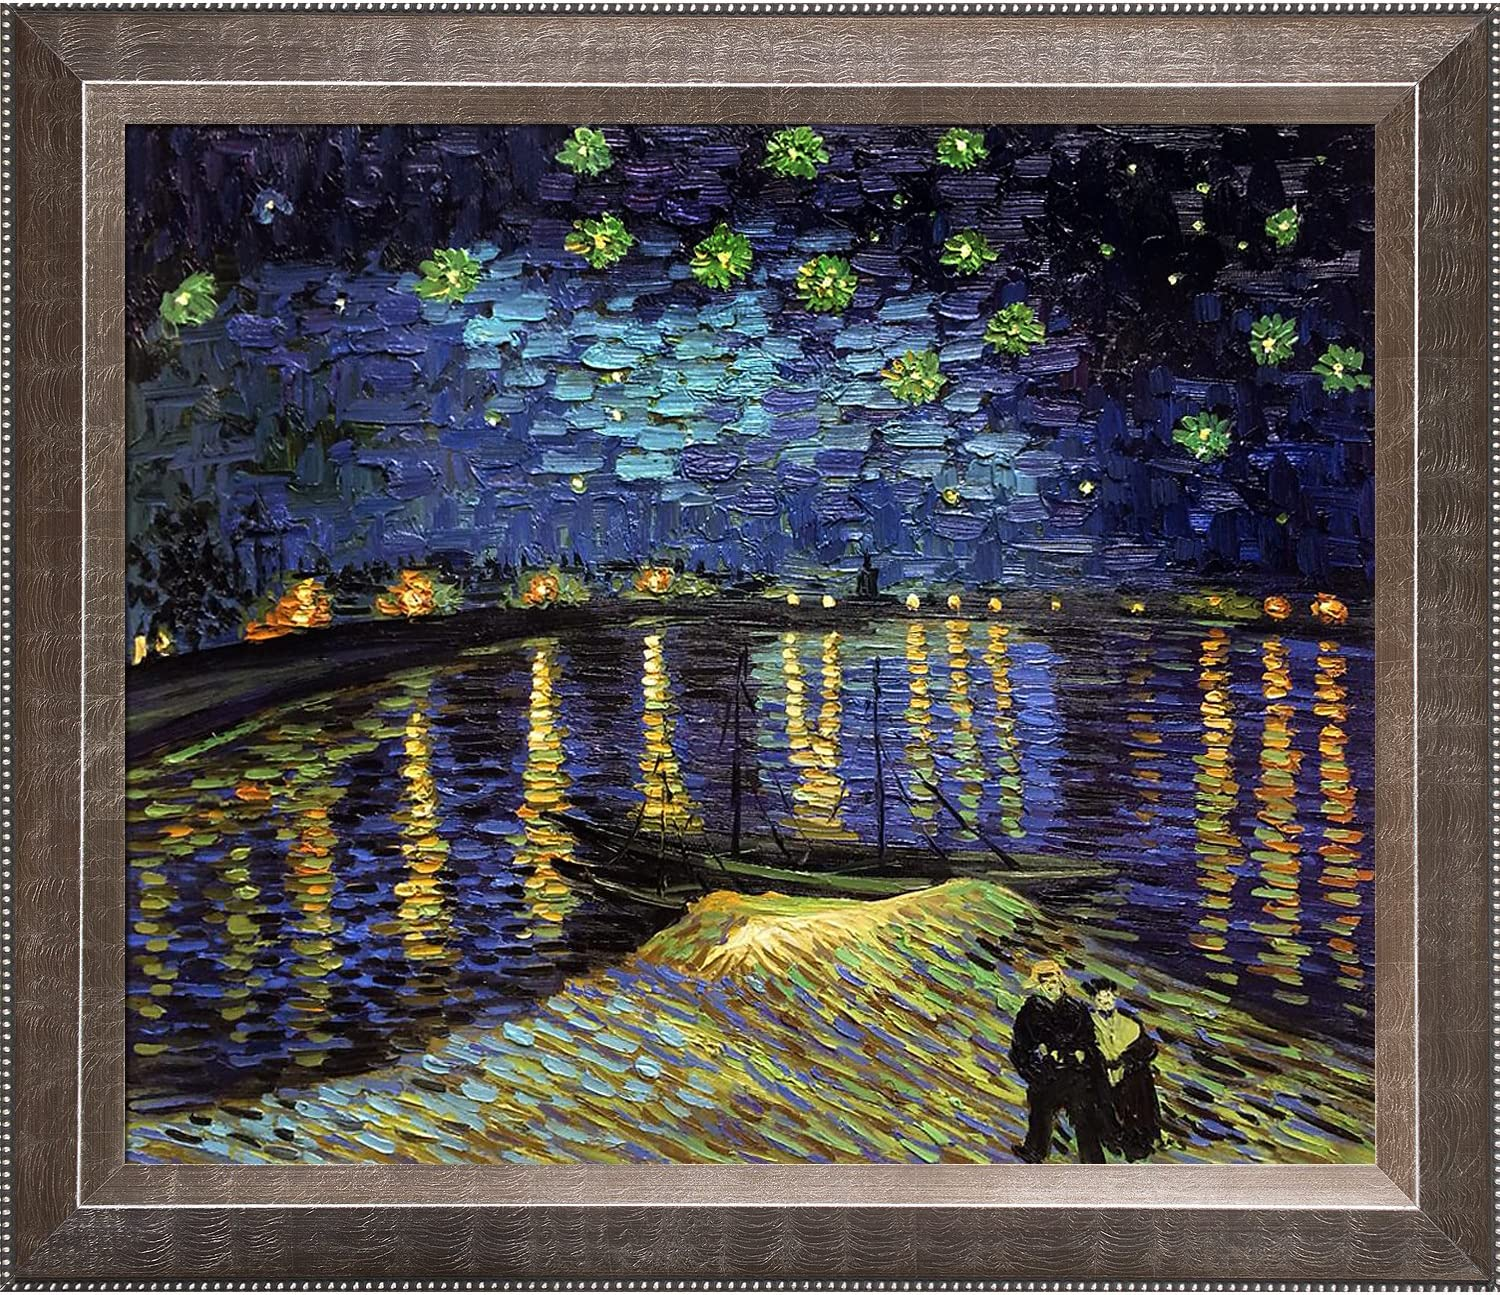 Medium overstockArt Starry Night Over The Rhone by Van Gogh with Veine D Or Pewter Angled Frame